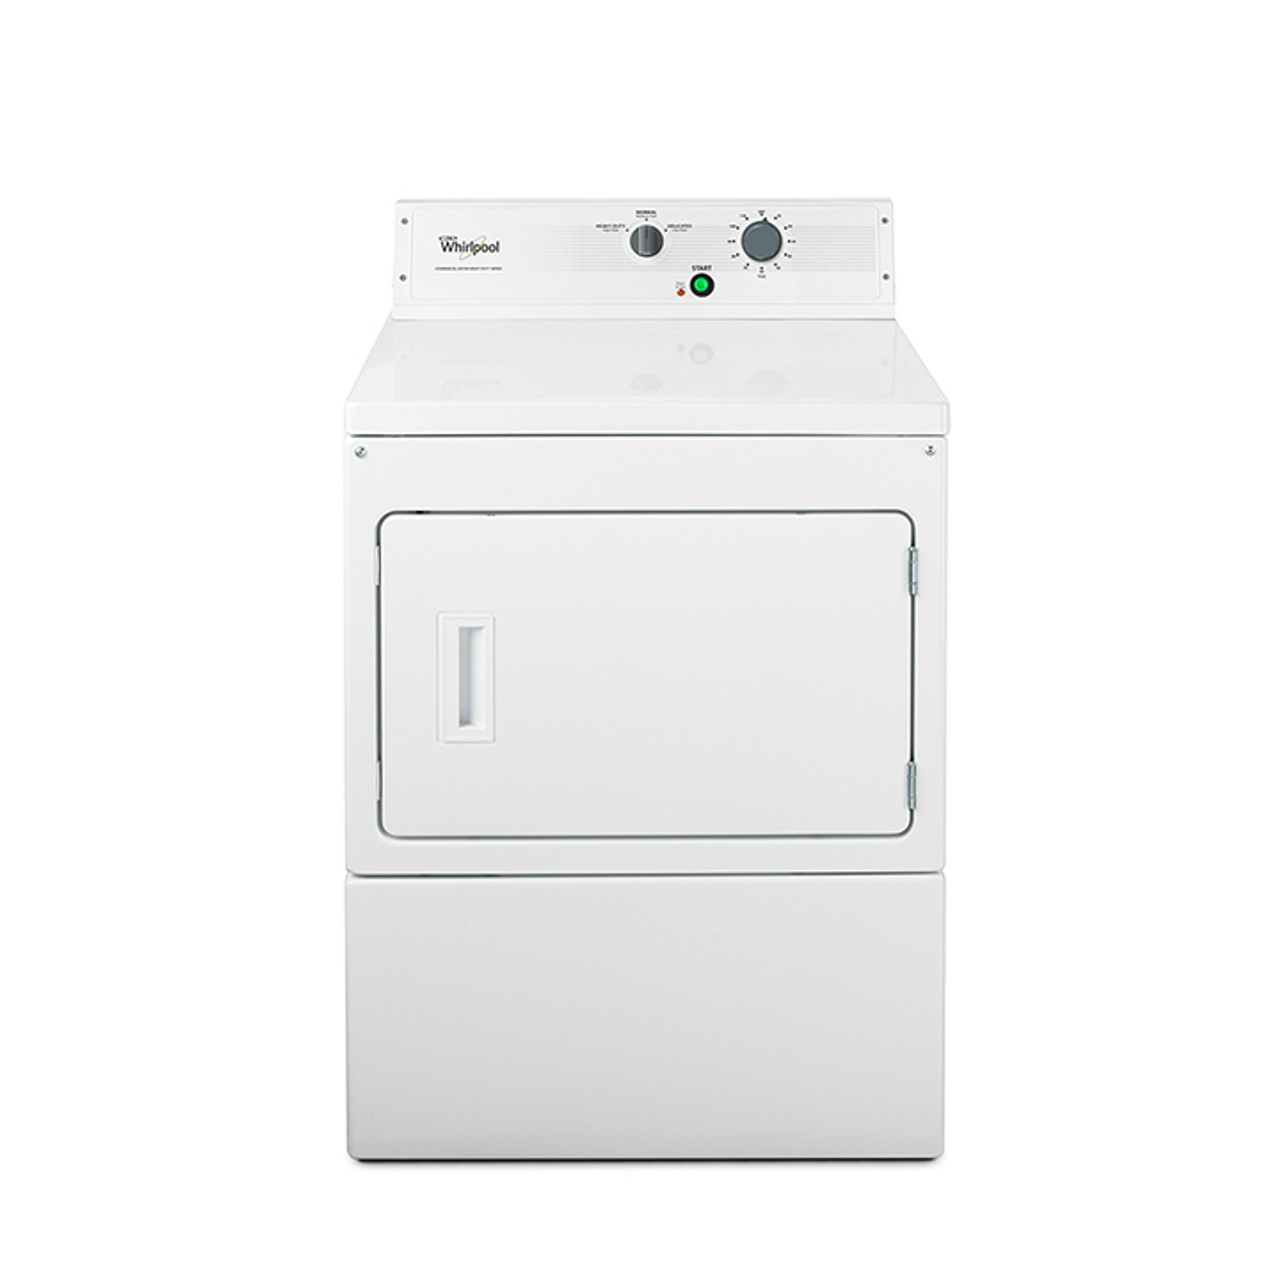 Whirlpool CEM2793BQ OPL Full Console Electric Dryer